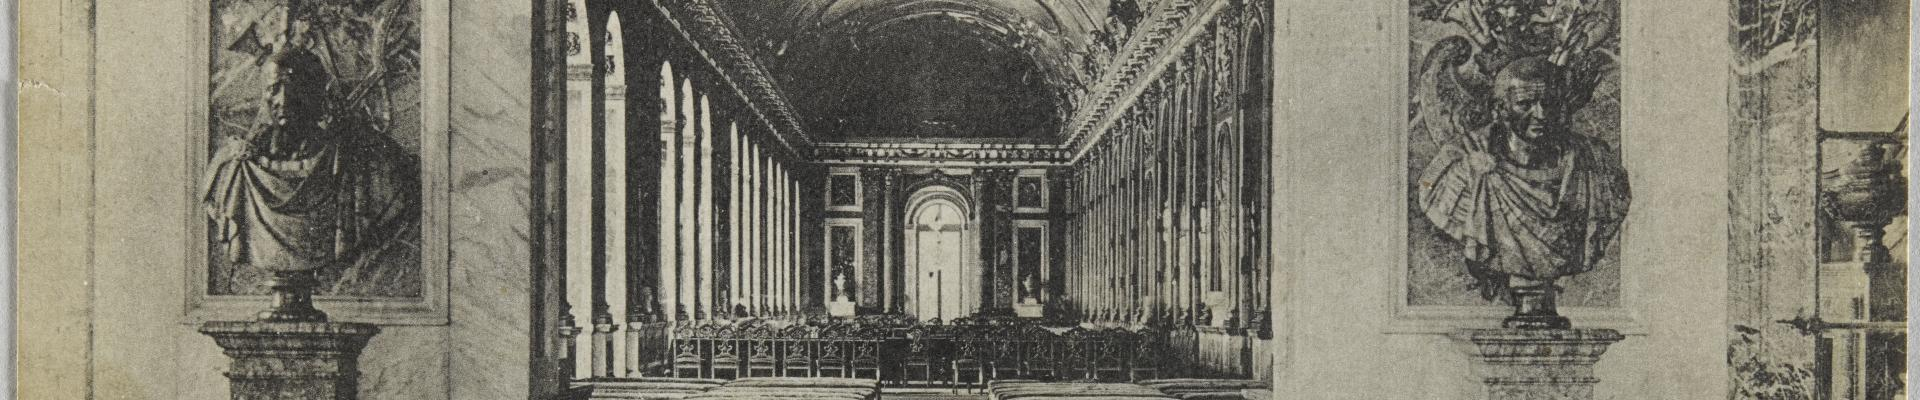 The Treaty of Versailles 1919 Palace of Versailles